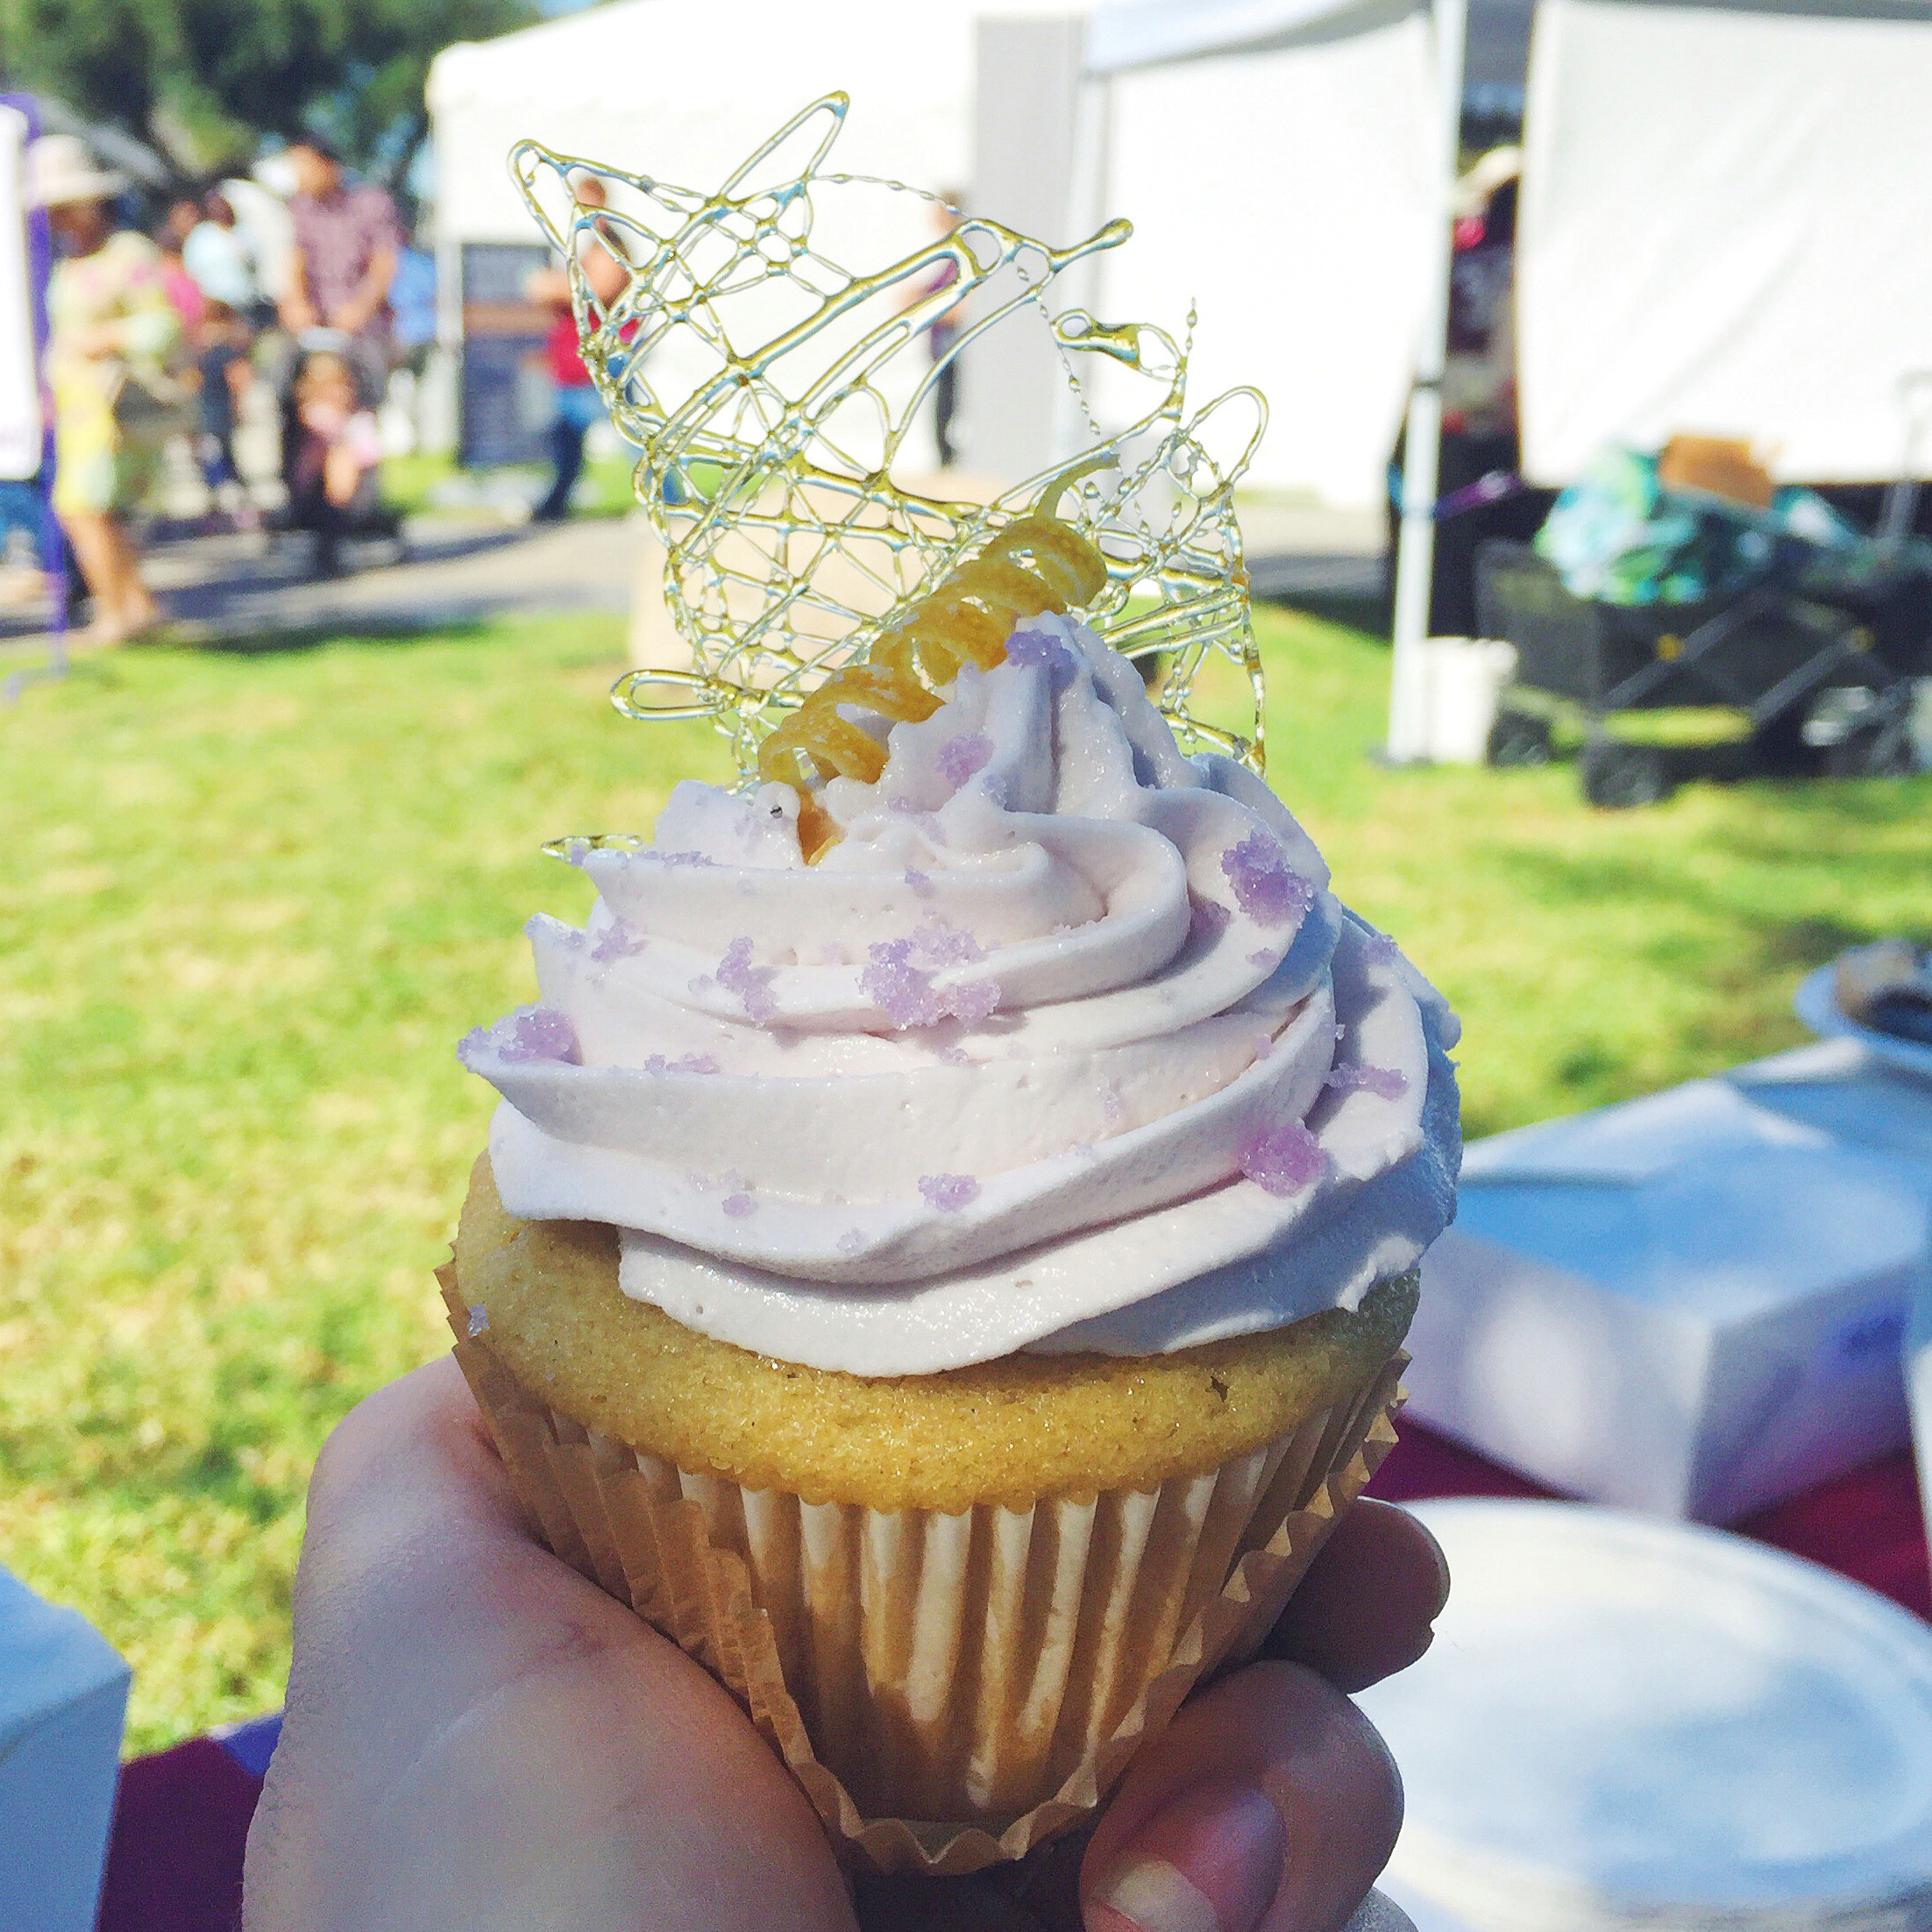 Lemon Lavender Cupcake with Lavender Sugar Crystals by Jara Fonseca, 1st Place & BEST OF SHOW, 2015 SoCal VegFest Vegan Cupcake Competition (Costa Mesa, CA, USA). Photo Credit: Jackie Sobon of  Vegan Yack Attack.